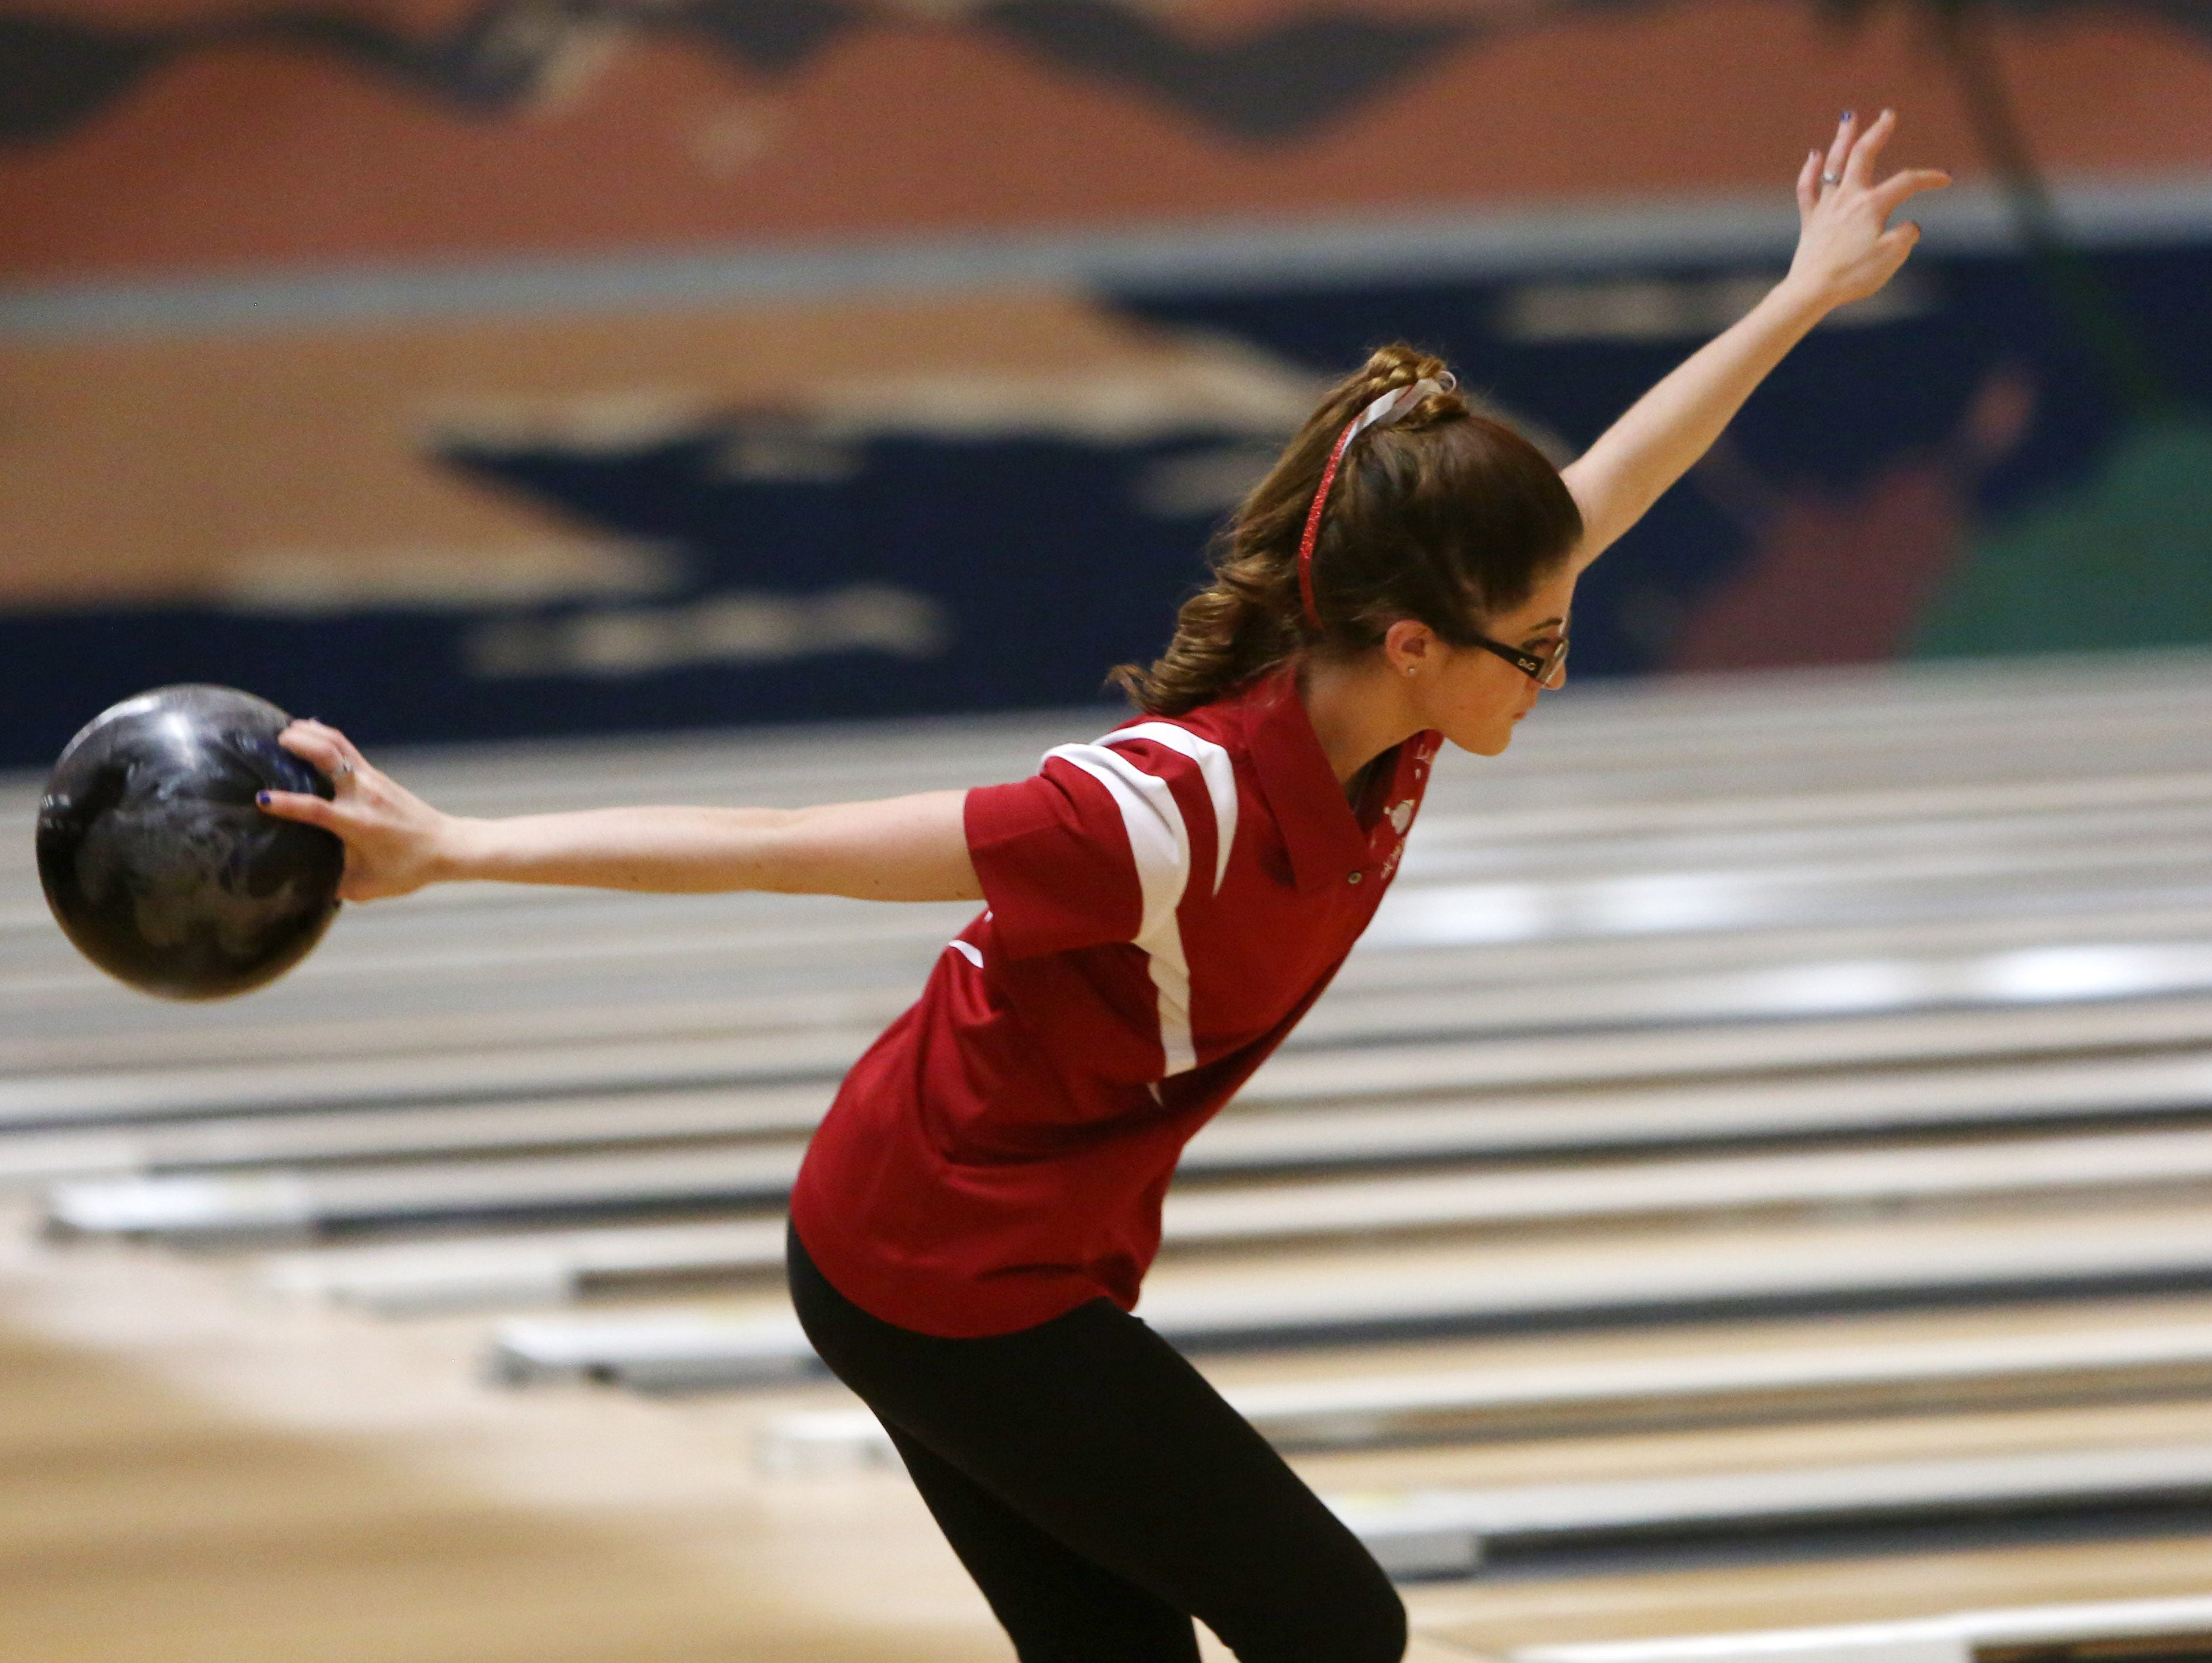 North Rockland's Deanna Jones bowling during the Section 1 girls bowling tournament at Fishkill Bowl Feb. 10, 2016. North Rockland went on to win the tournament.